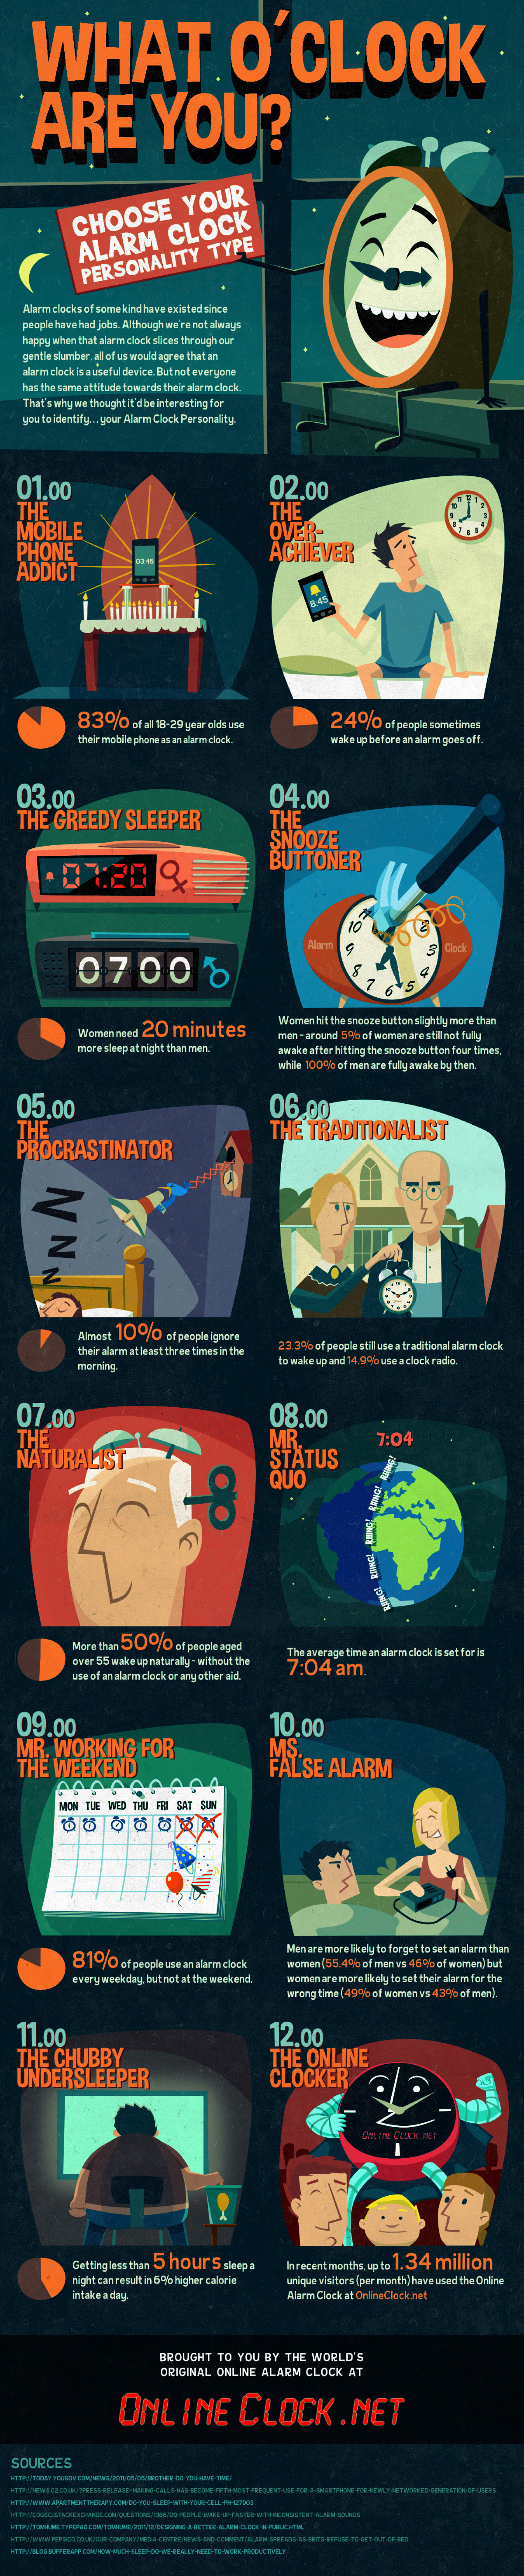 What O' Clock Are You? Infographic